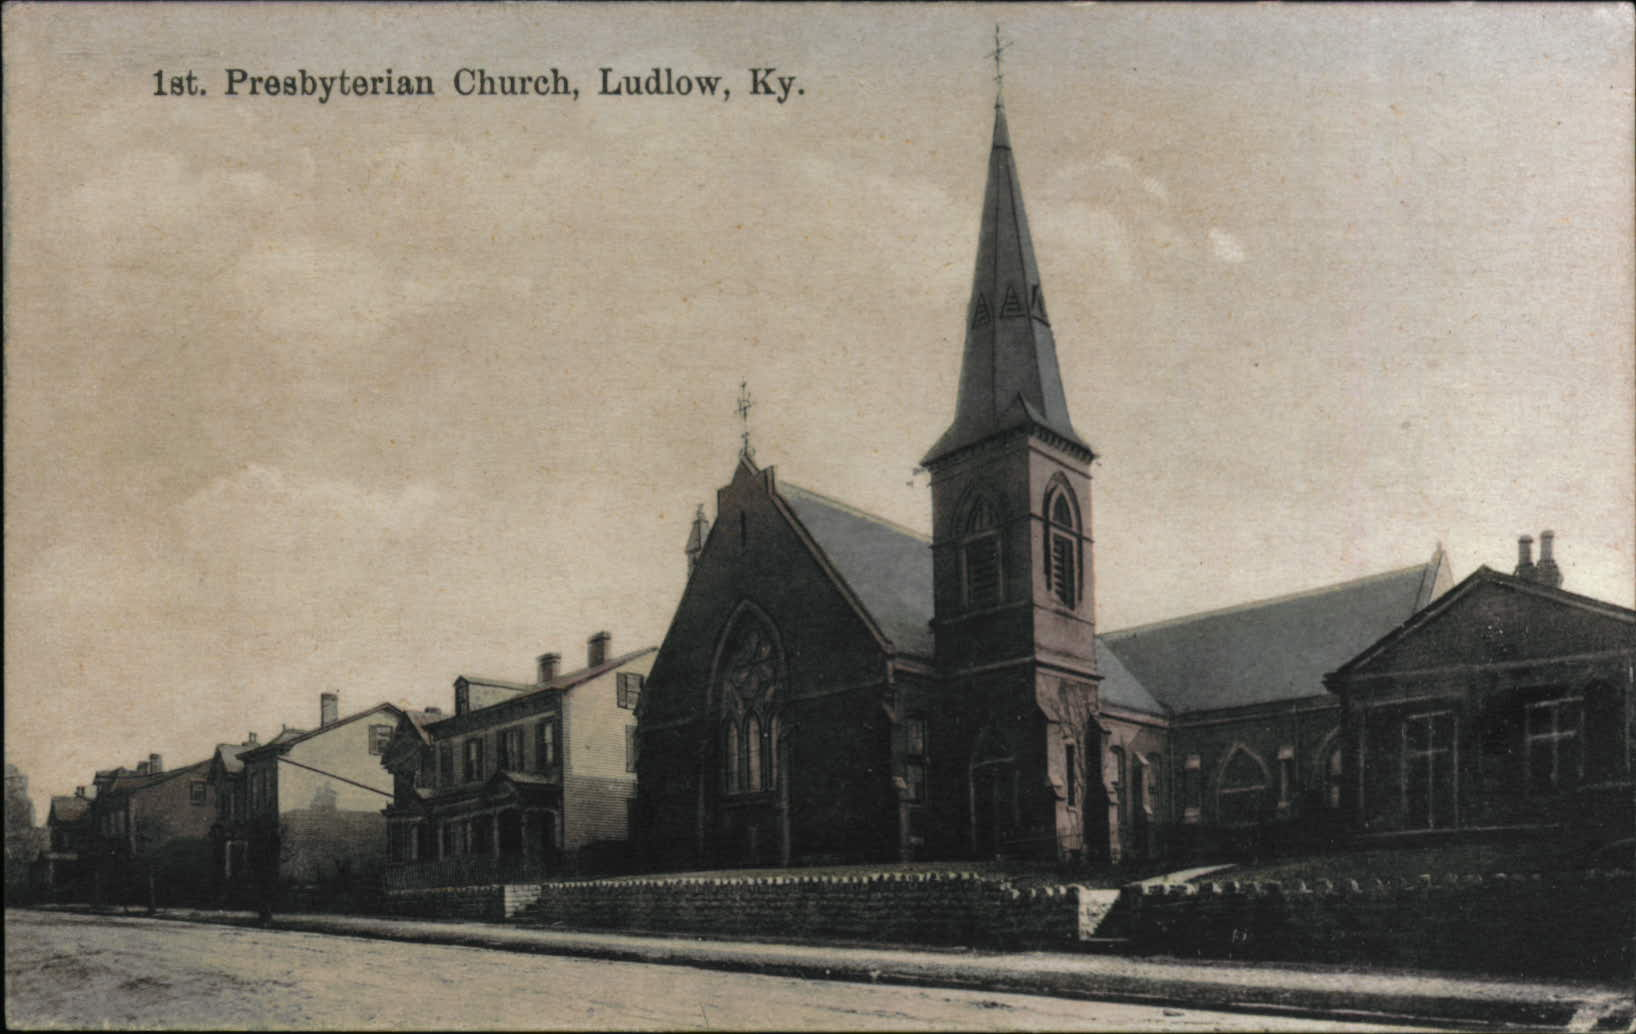 First Presbyterian Church, Ludlow.